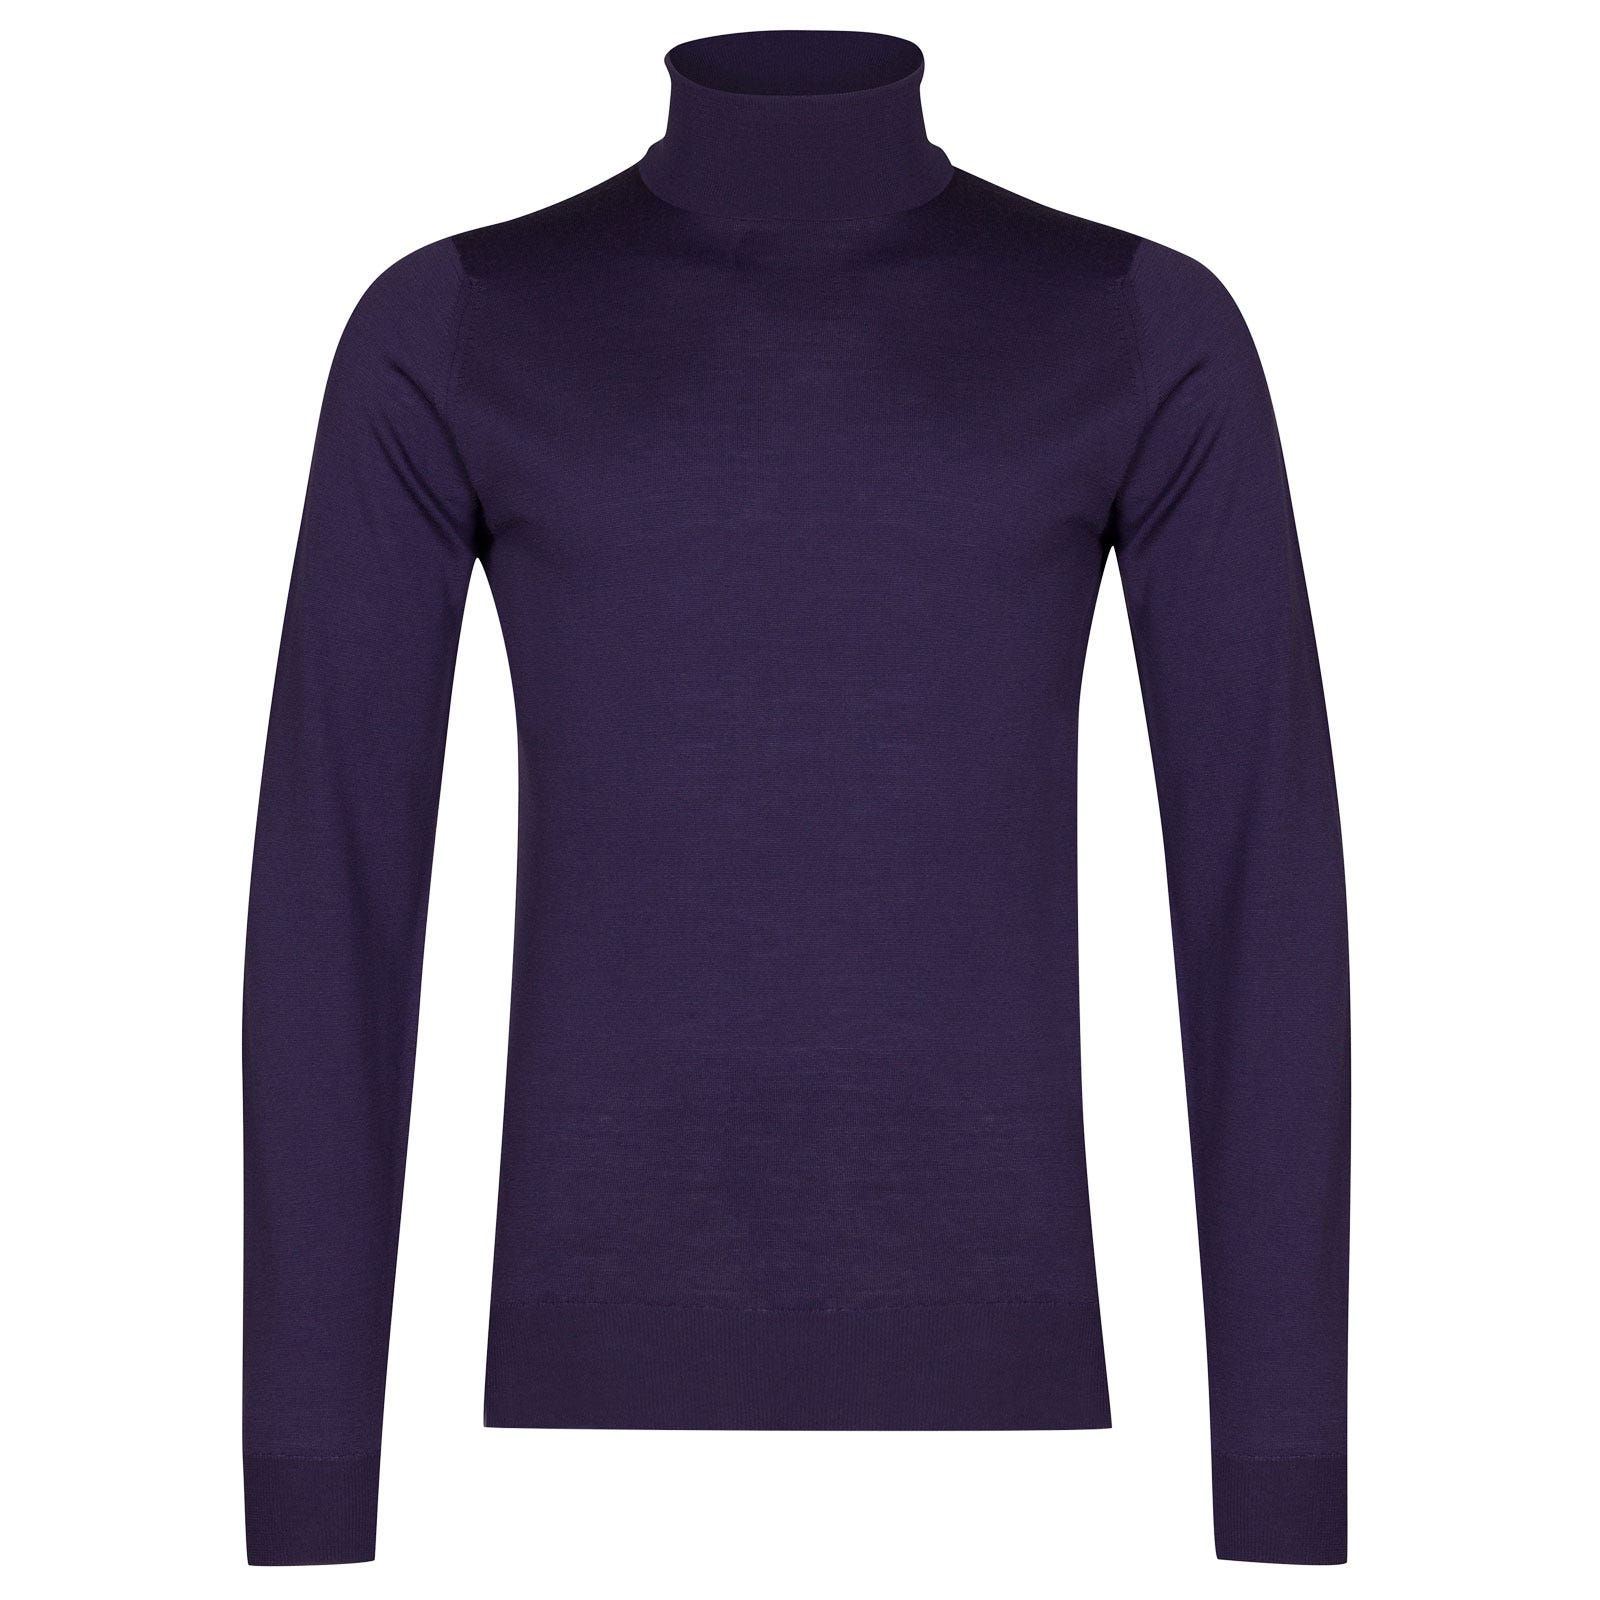 John Smedley cherwell Merino Wool Pullover in Elderberry Purple-XXL